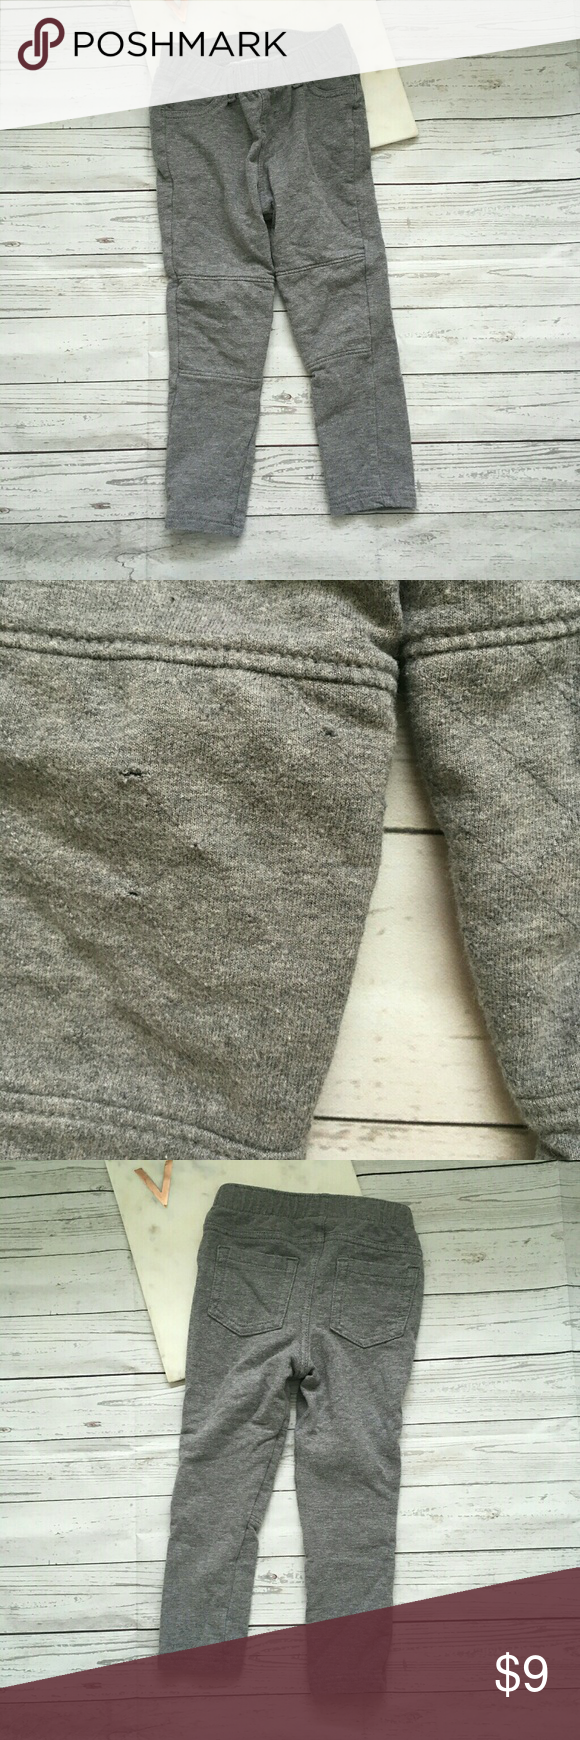 cat & jack boys 3t grey skinny pants knee patches gently used there are some small holes in the knees still have a lot of wear  waist = 8.5 inches inseam = 14 inches cat & jack Bottoms Casual